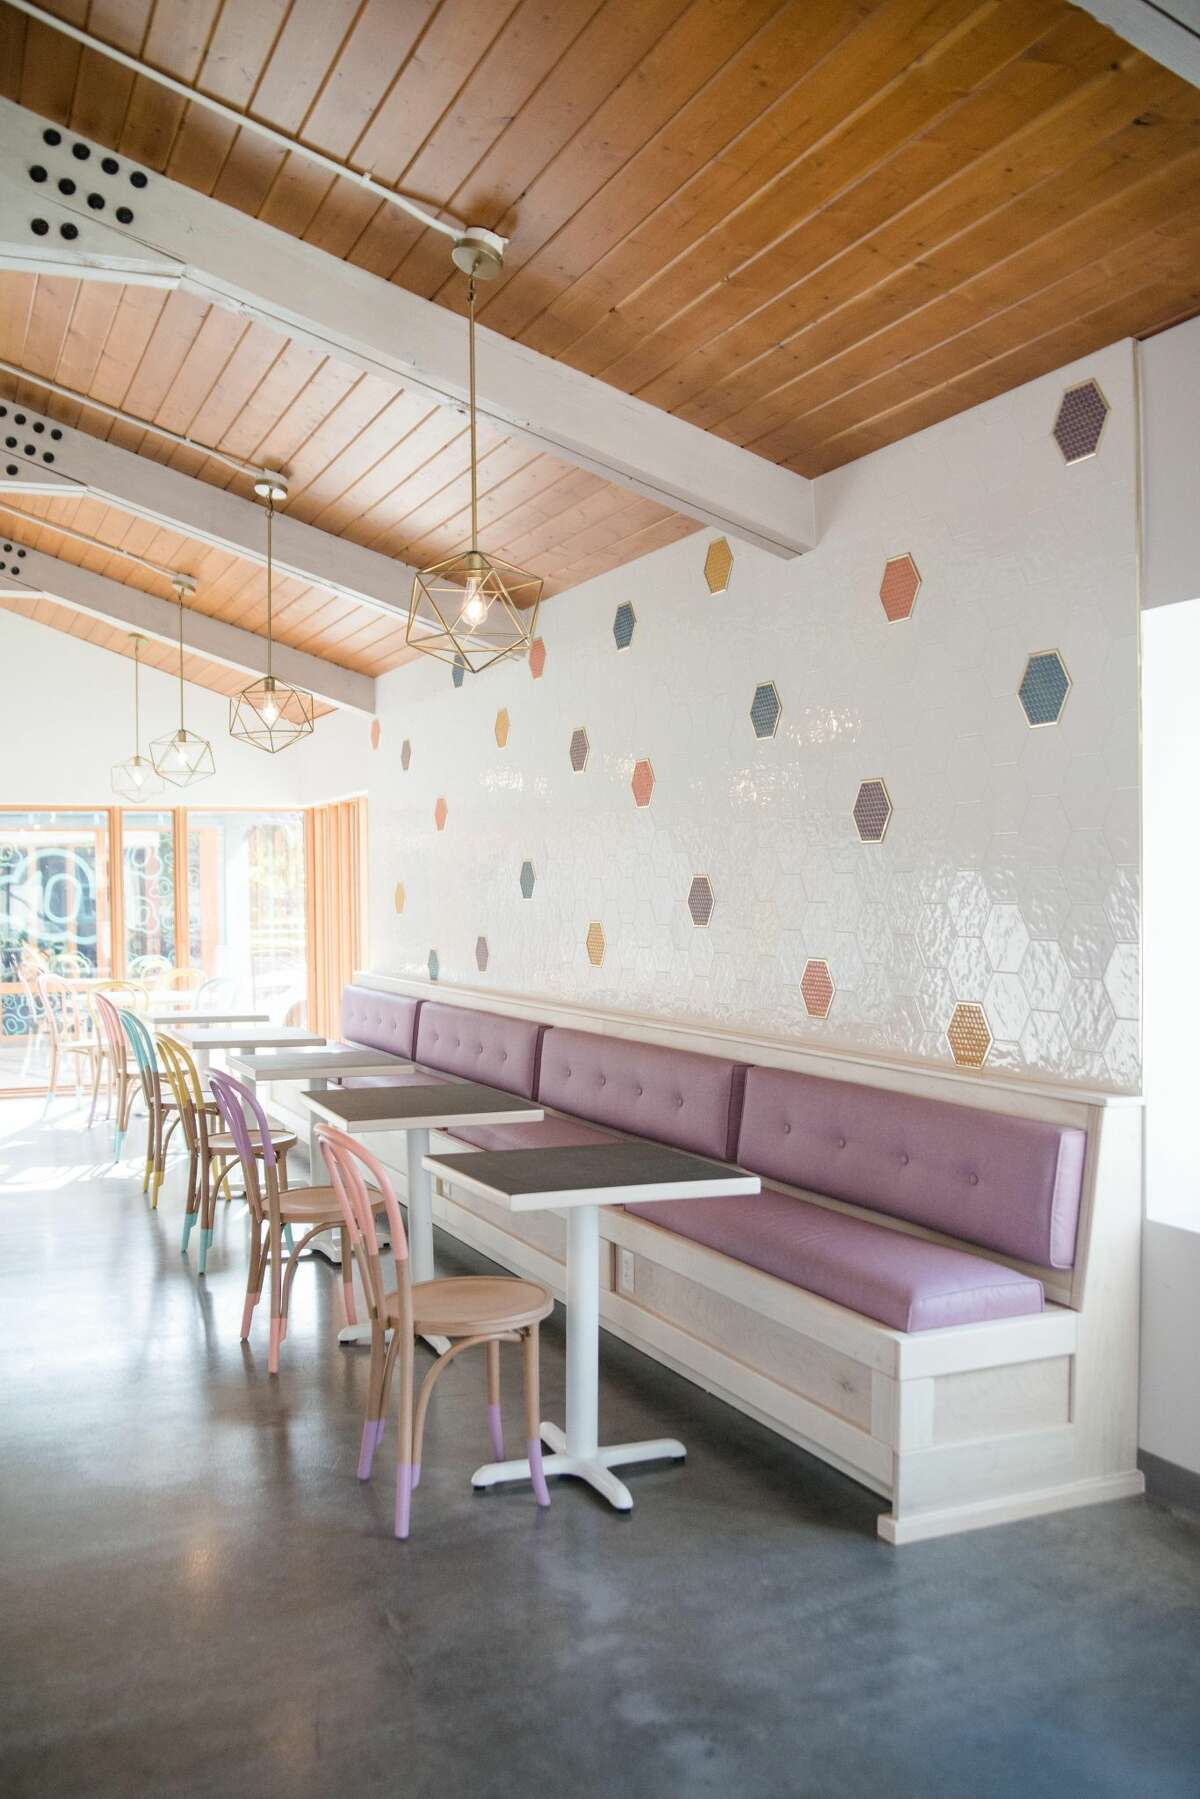 Melange Creperie's new Heights brick-and-mortar restaurant was designed by Tish Ochoa's own Clover Design Studio.